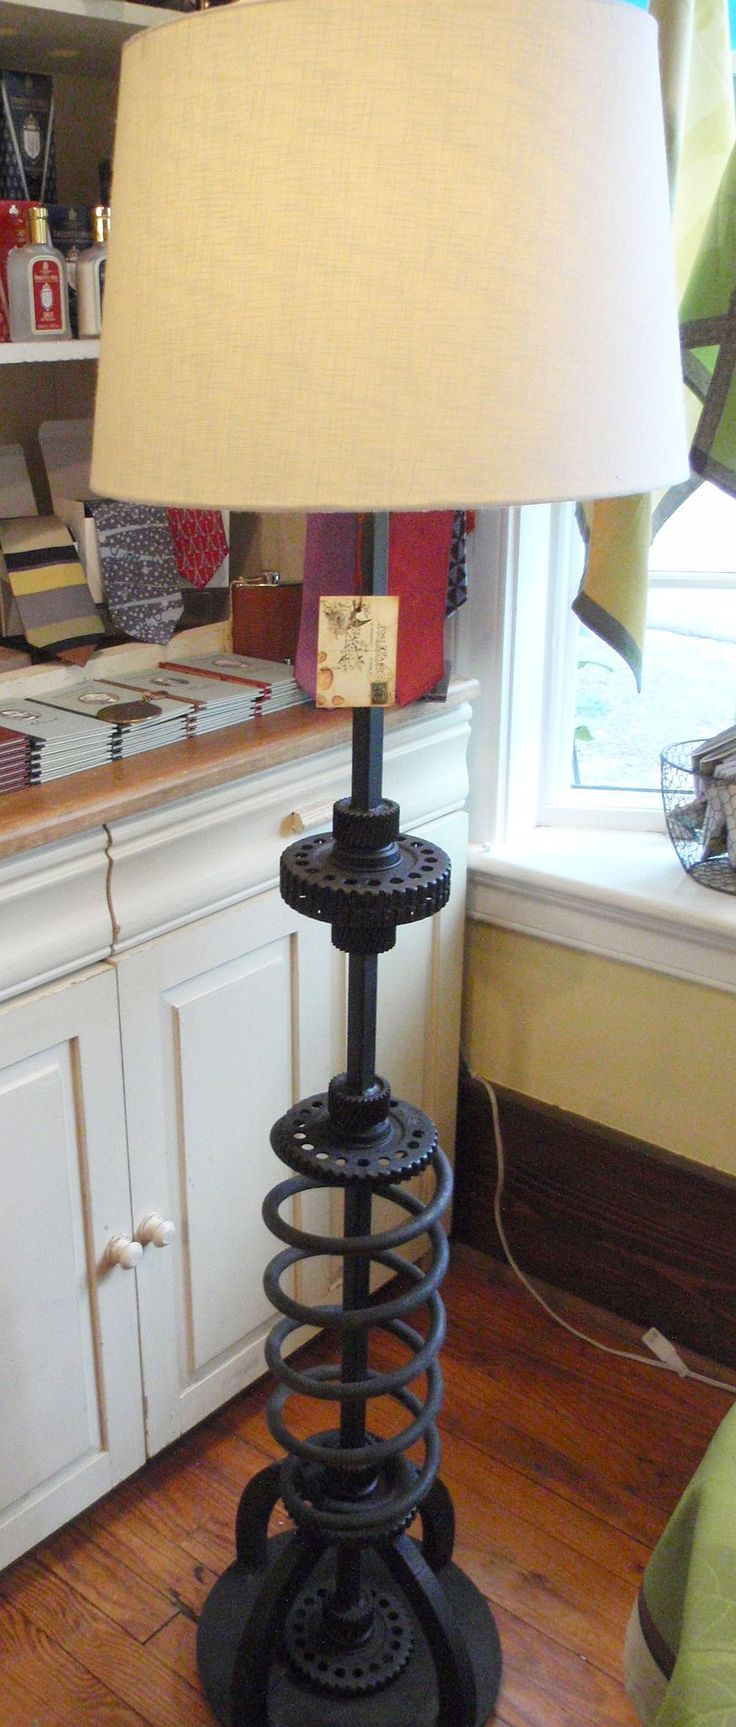 Vintage Iron Coil and Gears Lamp made in USA, at r.h. ballard shop. #industrial #vintagelamp